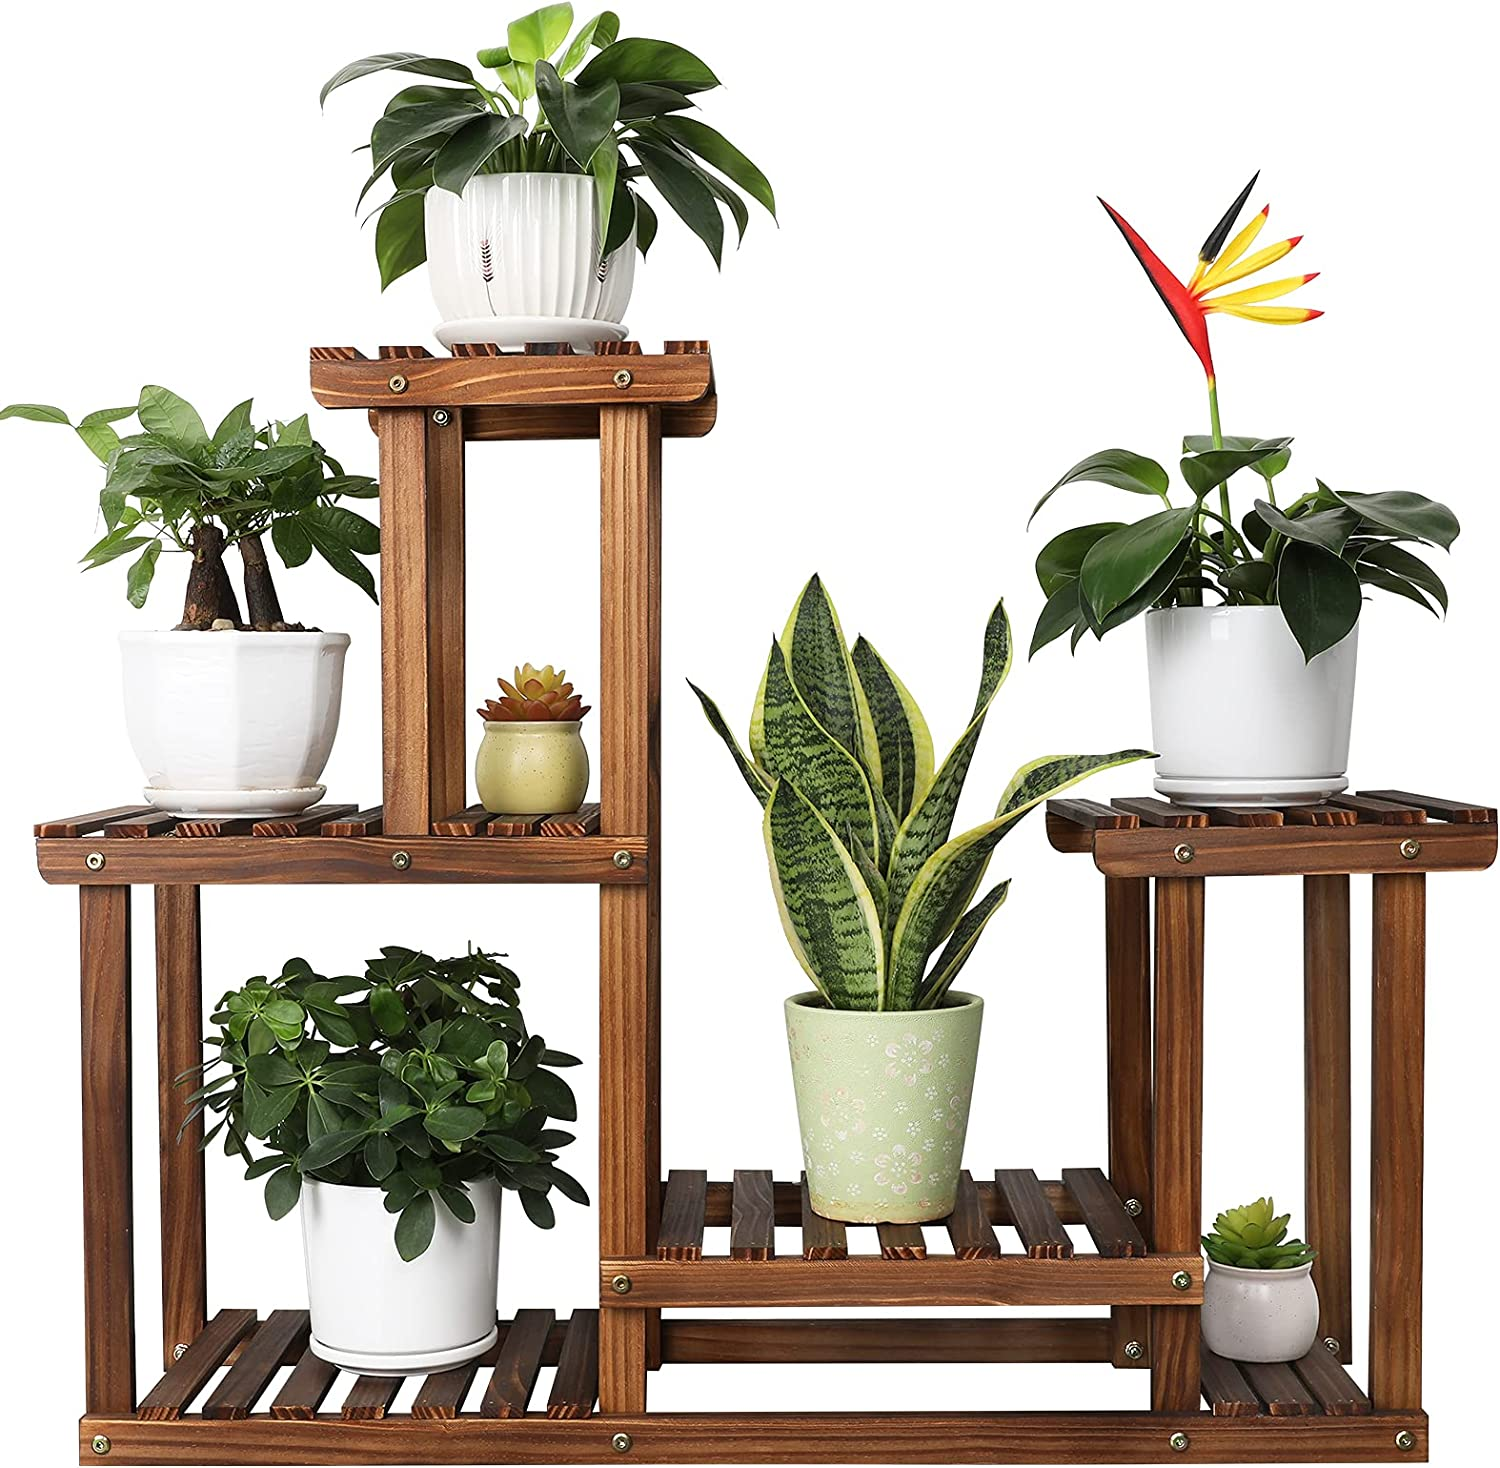 Jotsport 4 Tier High-Low Indianapolis Mall Plant Wood Shelv Dealing full price reduction Multi-Tier Stand